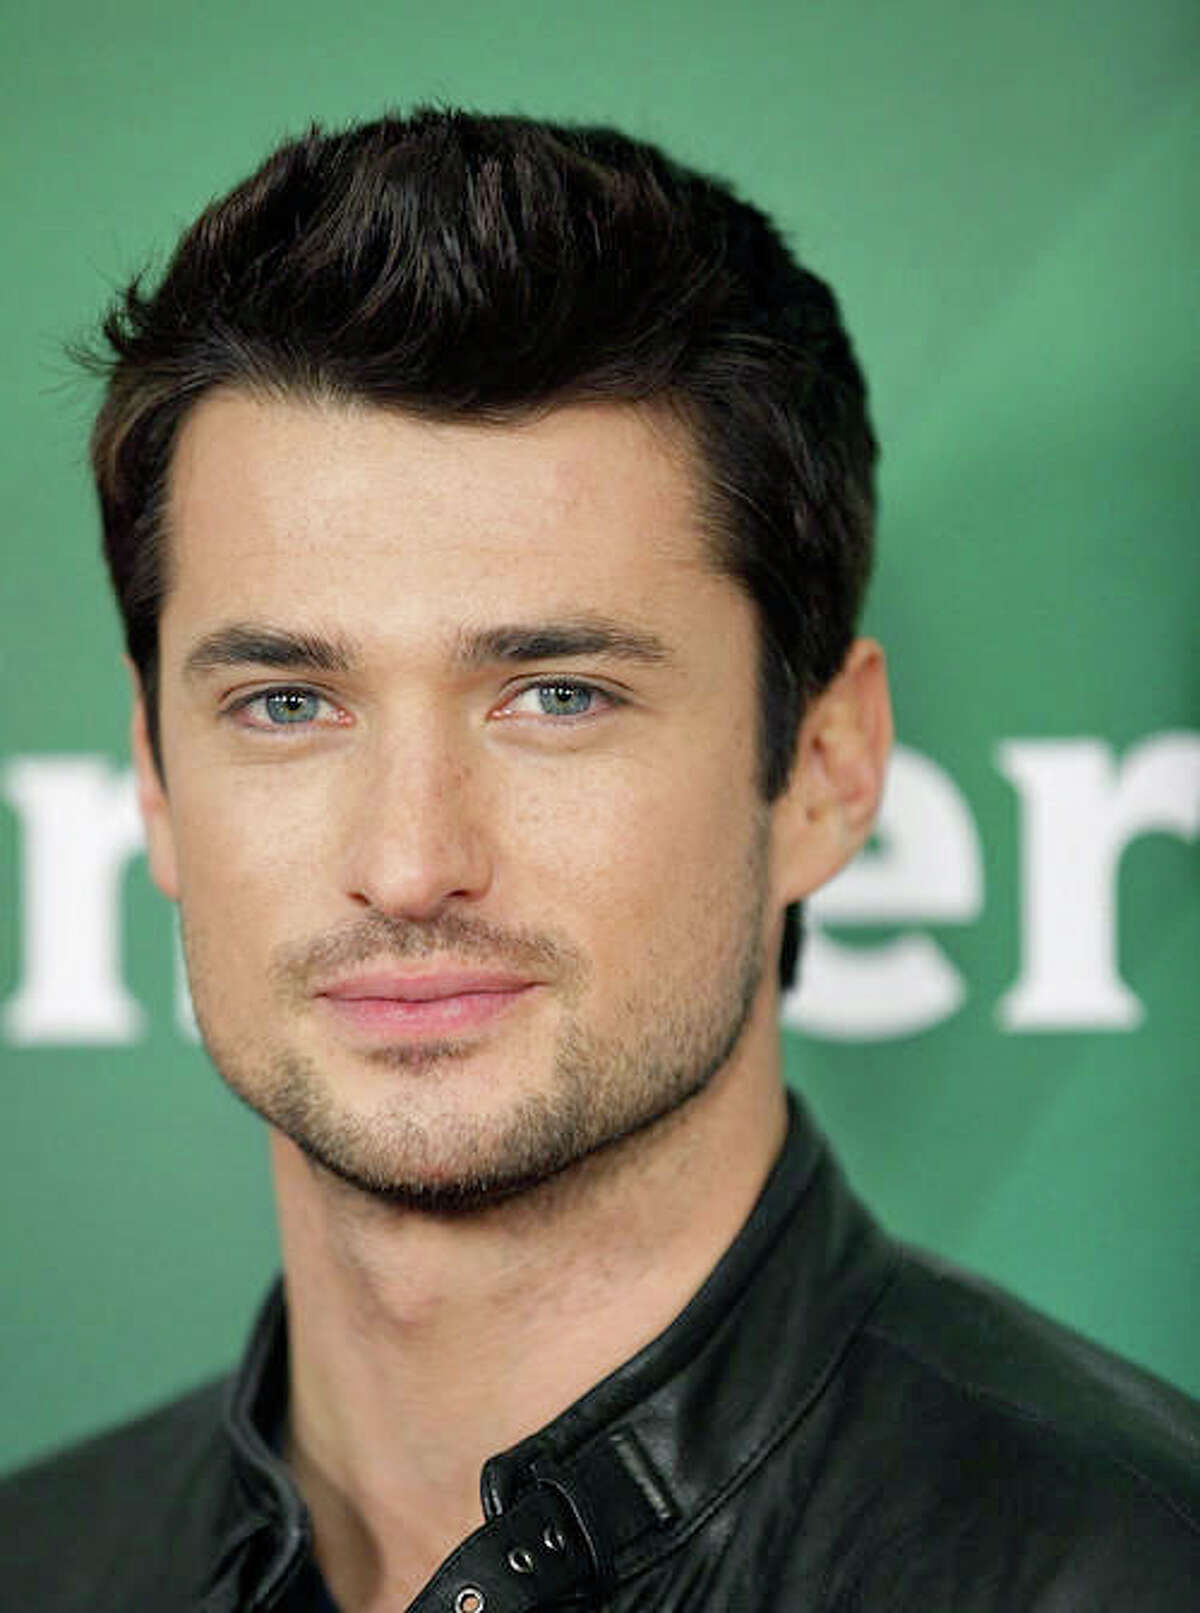 Wes Brown, TV actor who has had roles on True Blood, Hart of Dixie, and NBC's Deception.